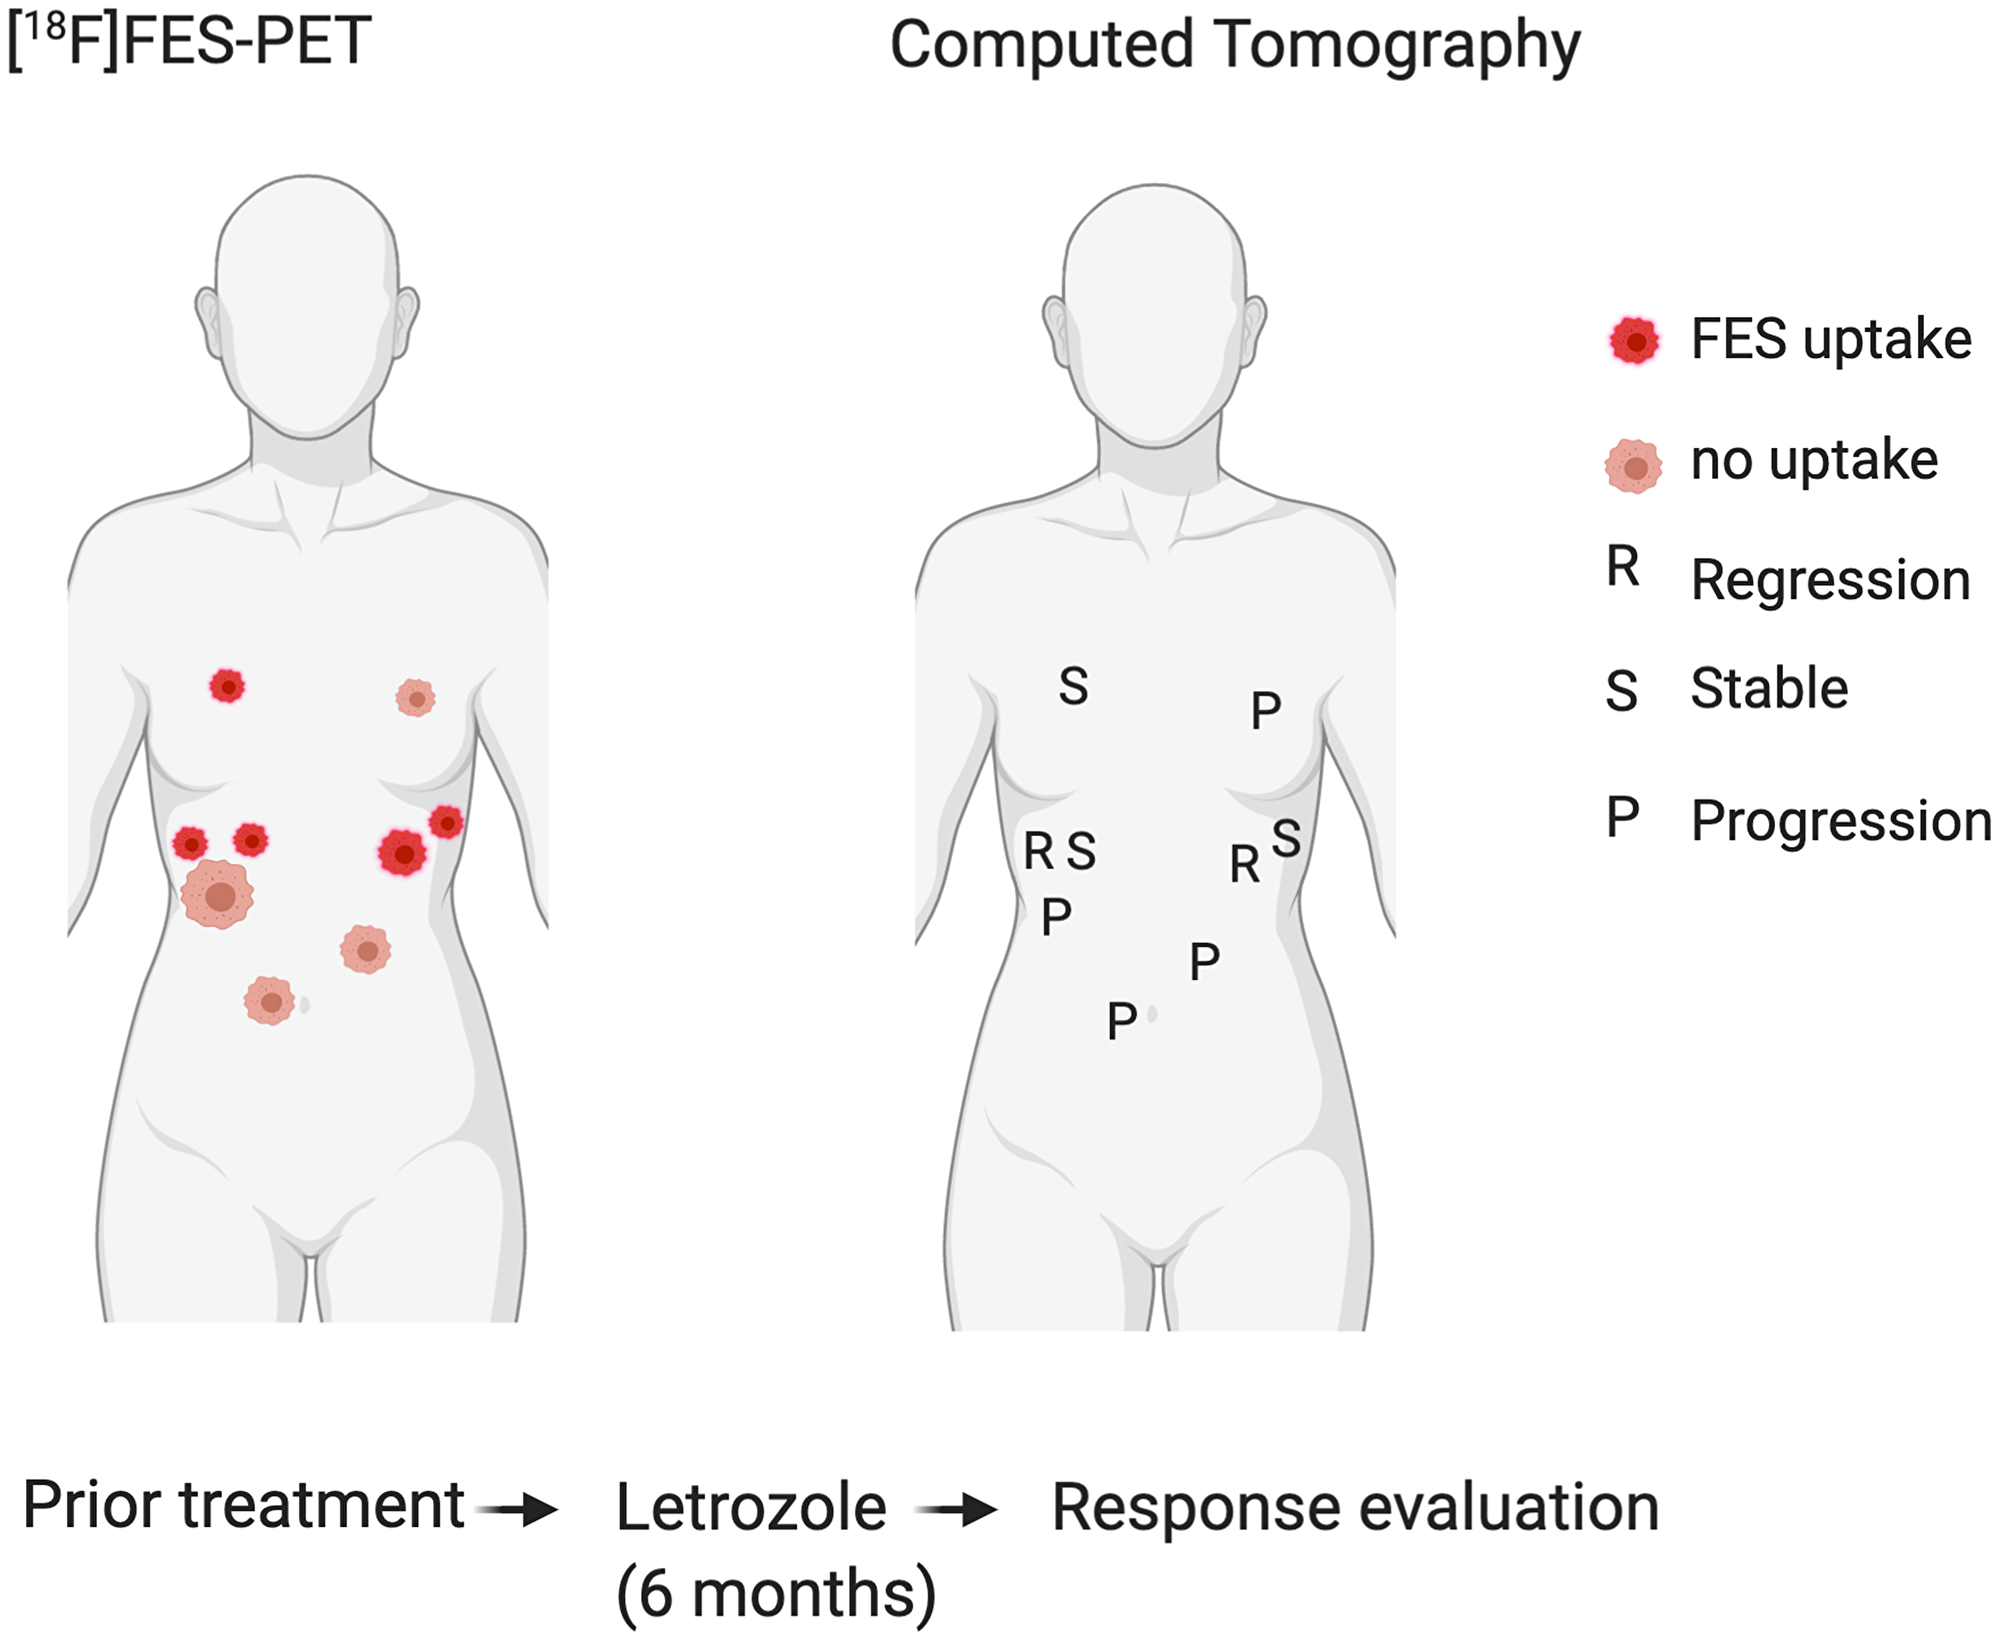 Correlation of FES positive and negative tumour locations (left) with response to hormone treatment (right).